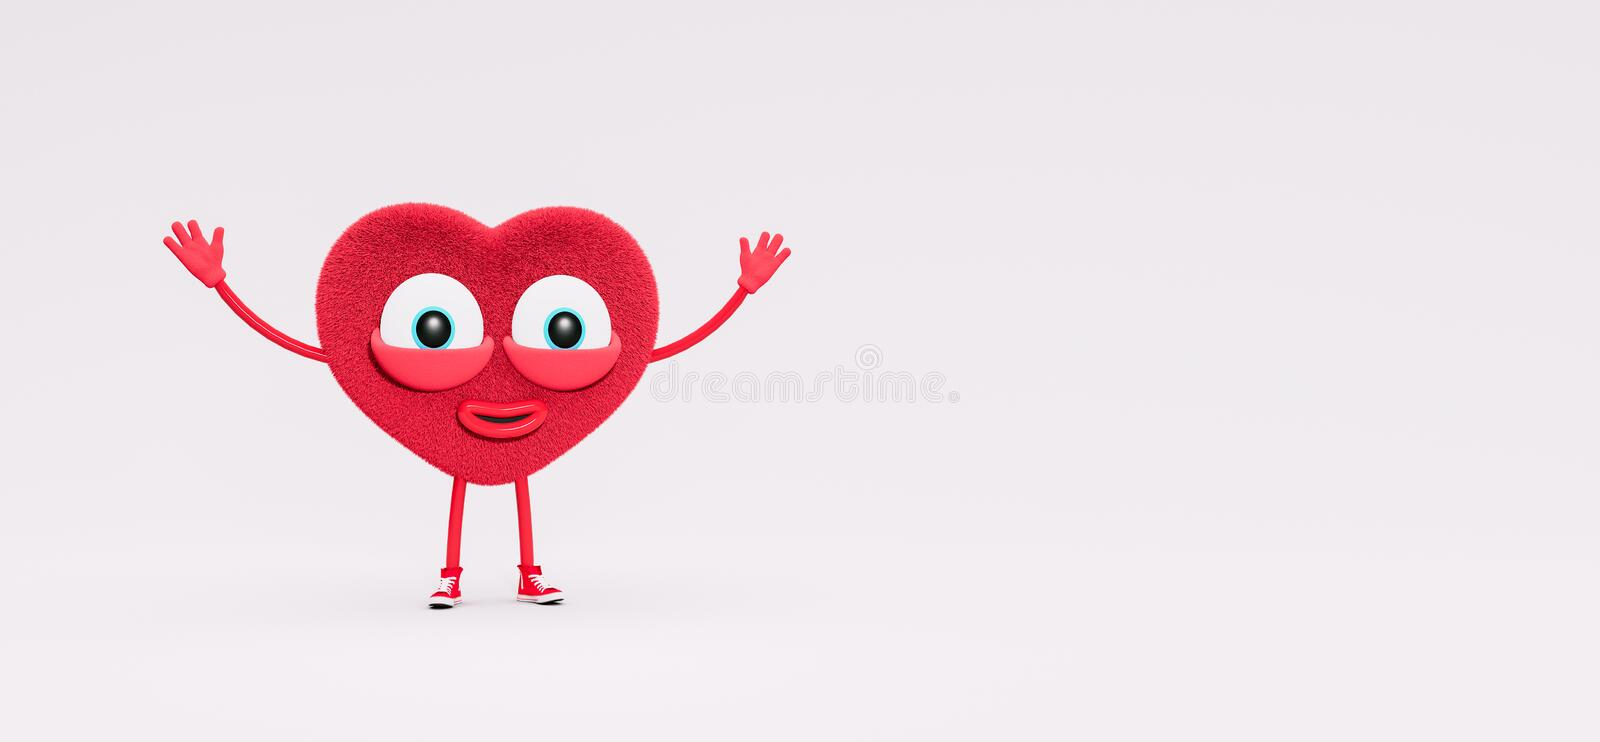 Funny Red Heart Character with open arms 3d Render stockbild